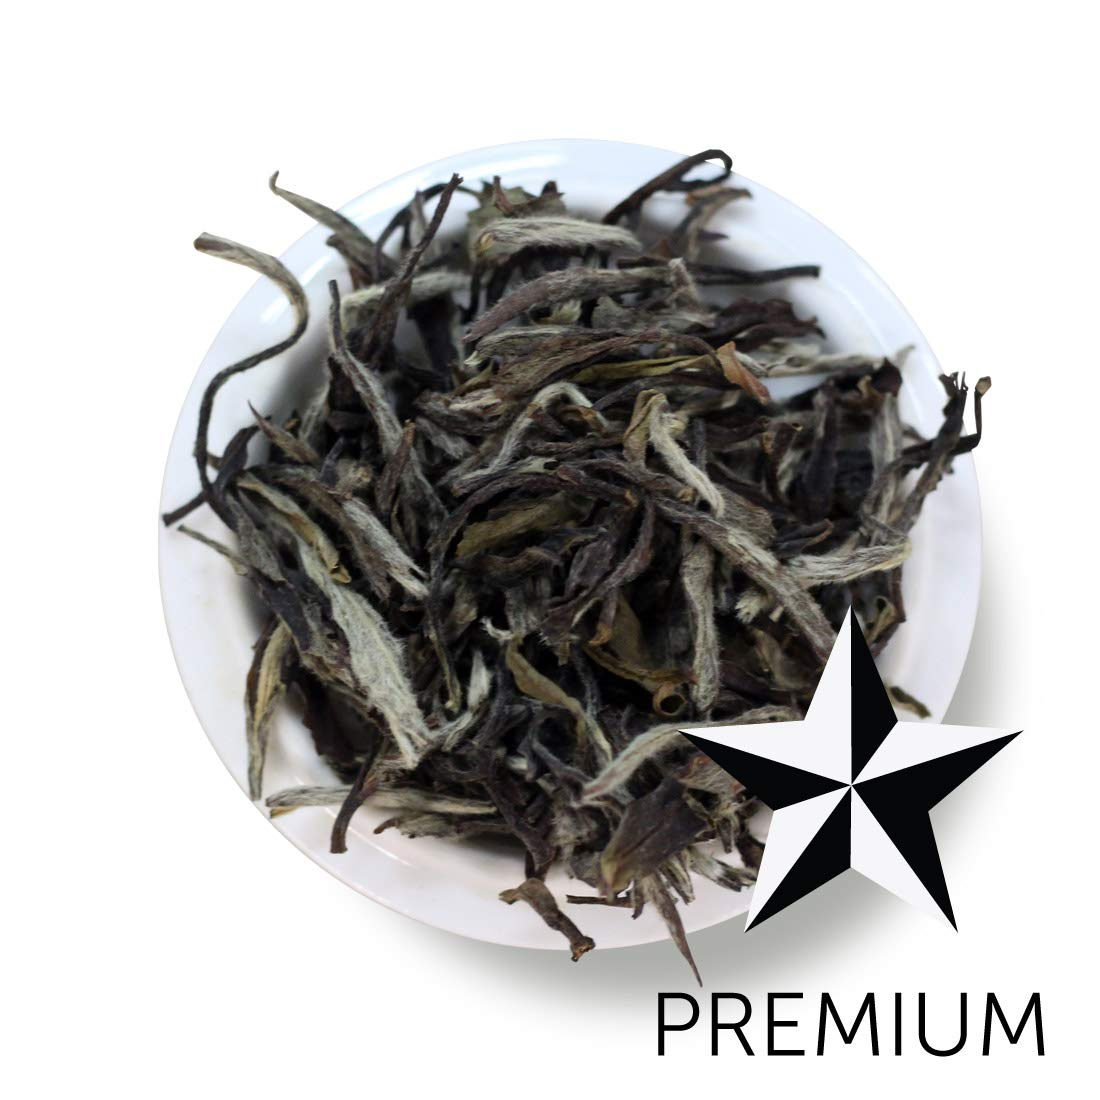 Field to Cup, April 2019 Release, 3oz (85g), Premium White Tea Organic Water Sprite, Oolong Tea, Loose Leaf by Field to Cup (Image #2)